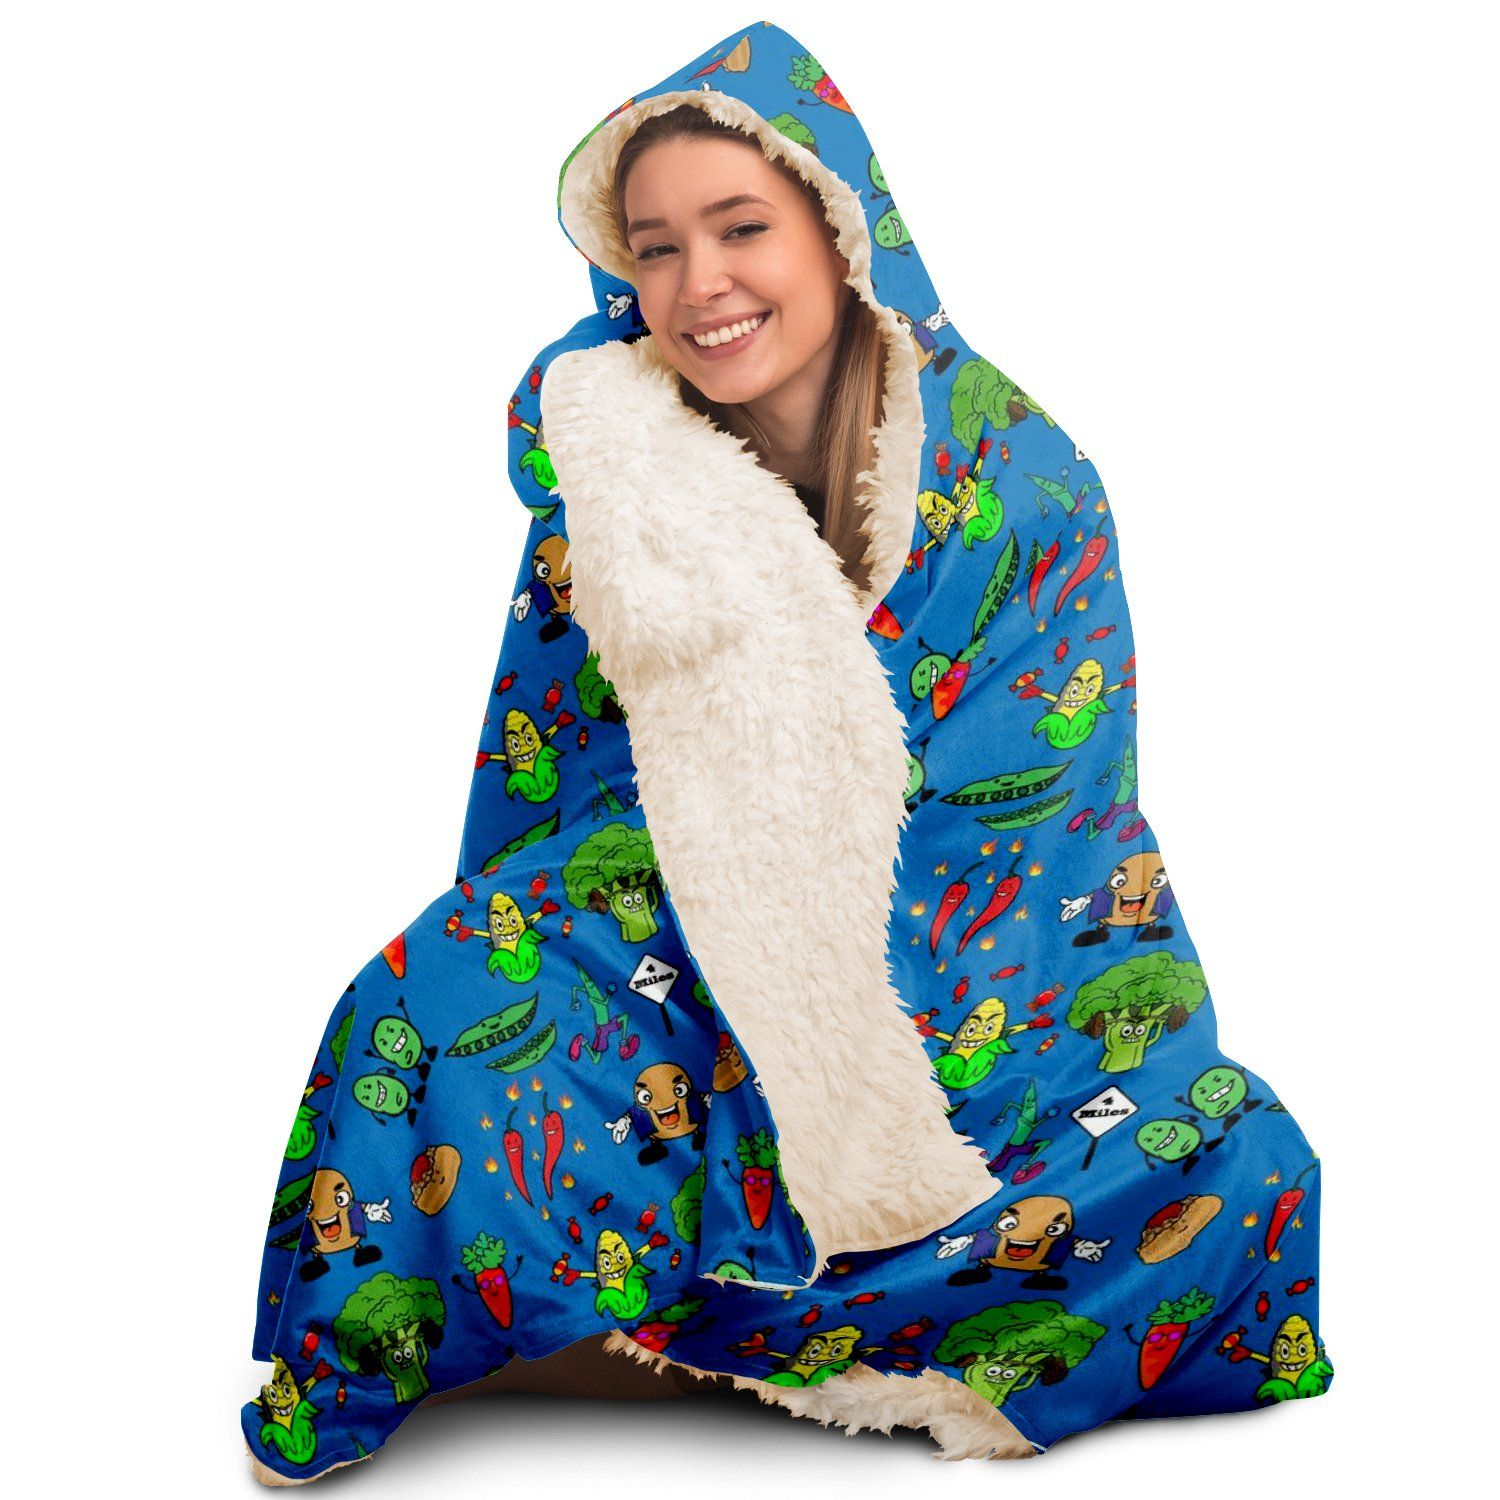 Animated Vegetables - Hooded Blanket - Youth and Adult Sizes - Fair Dinkum Fashion